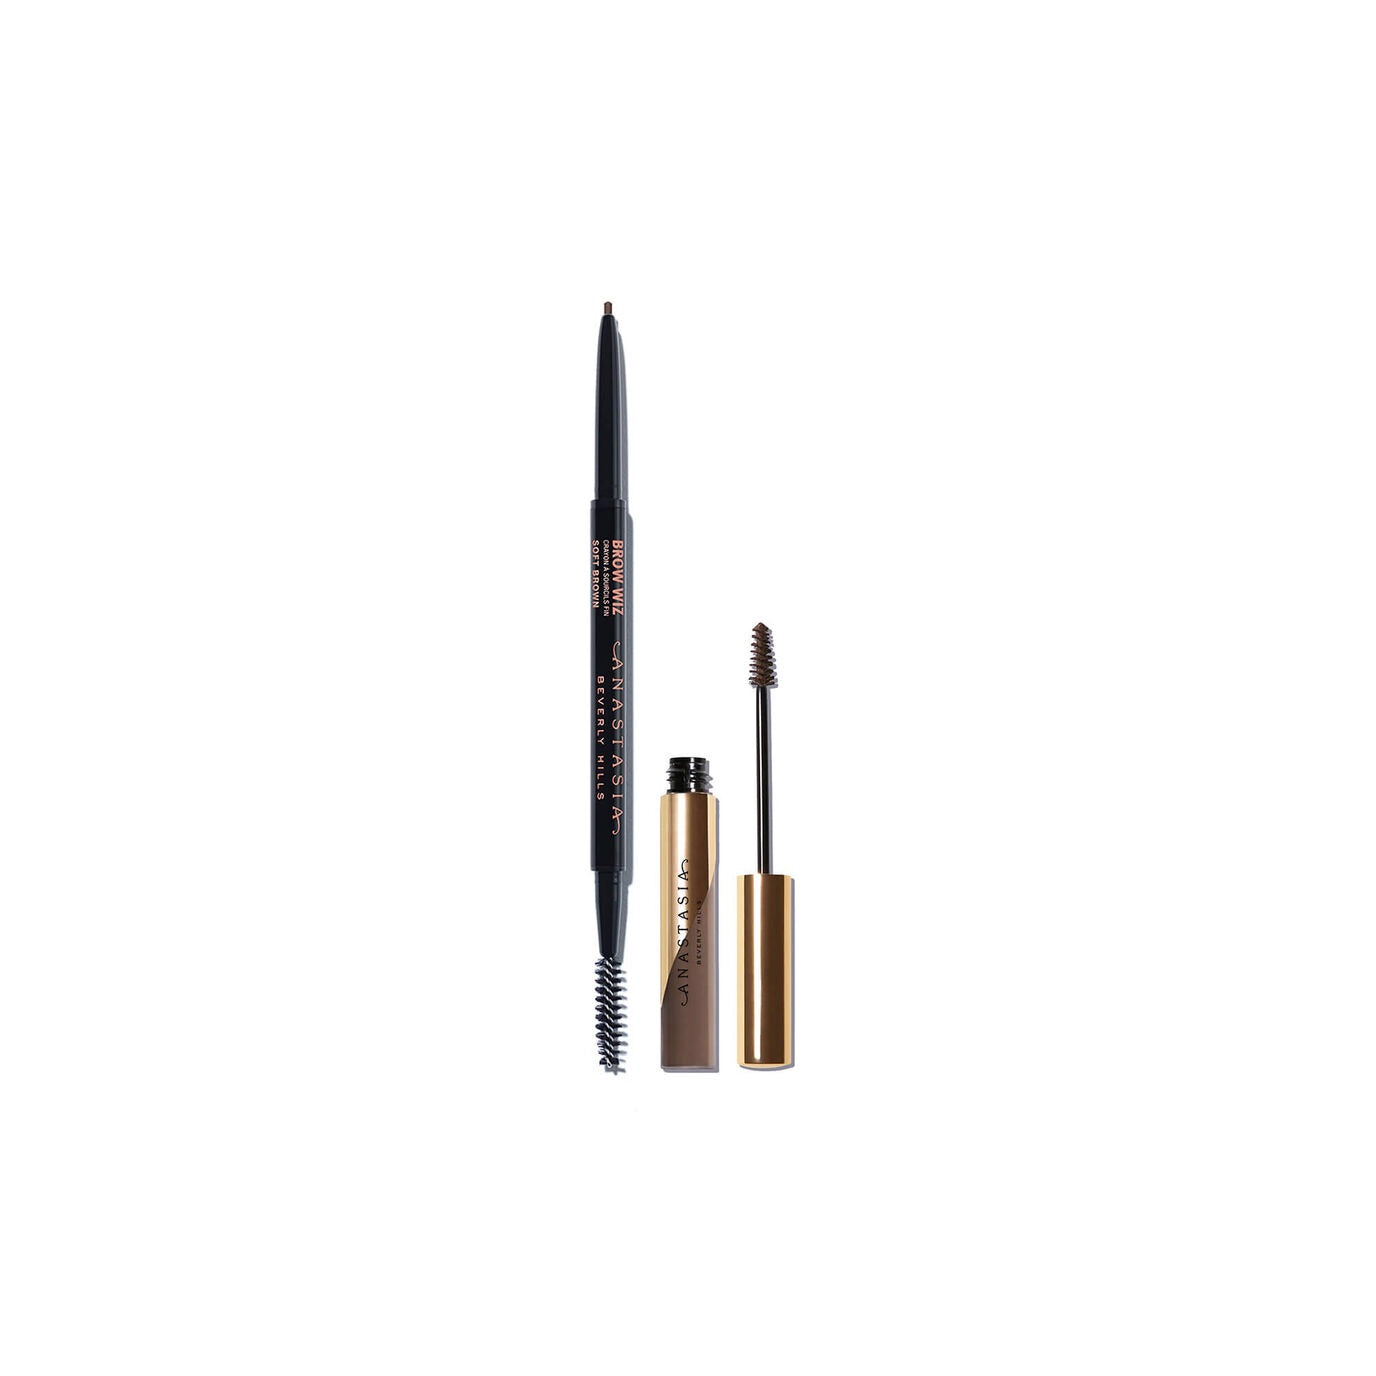 ANASTASIA BEVERLY HILLS Power Duo Brow Kit